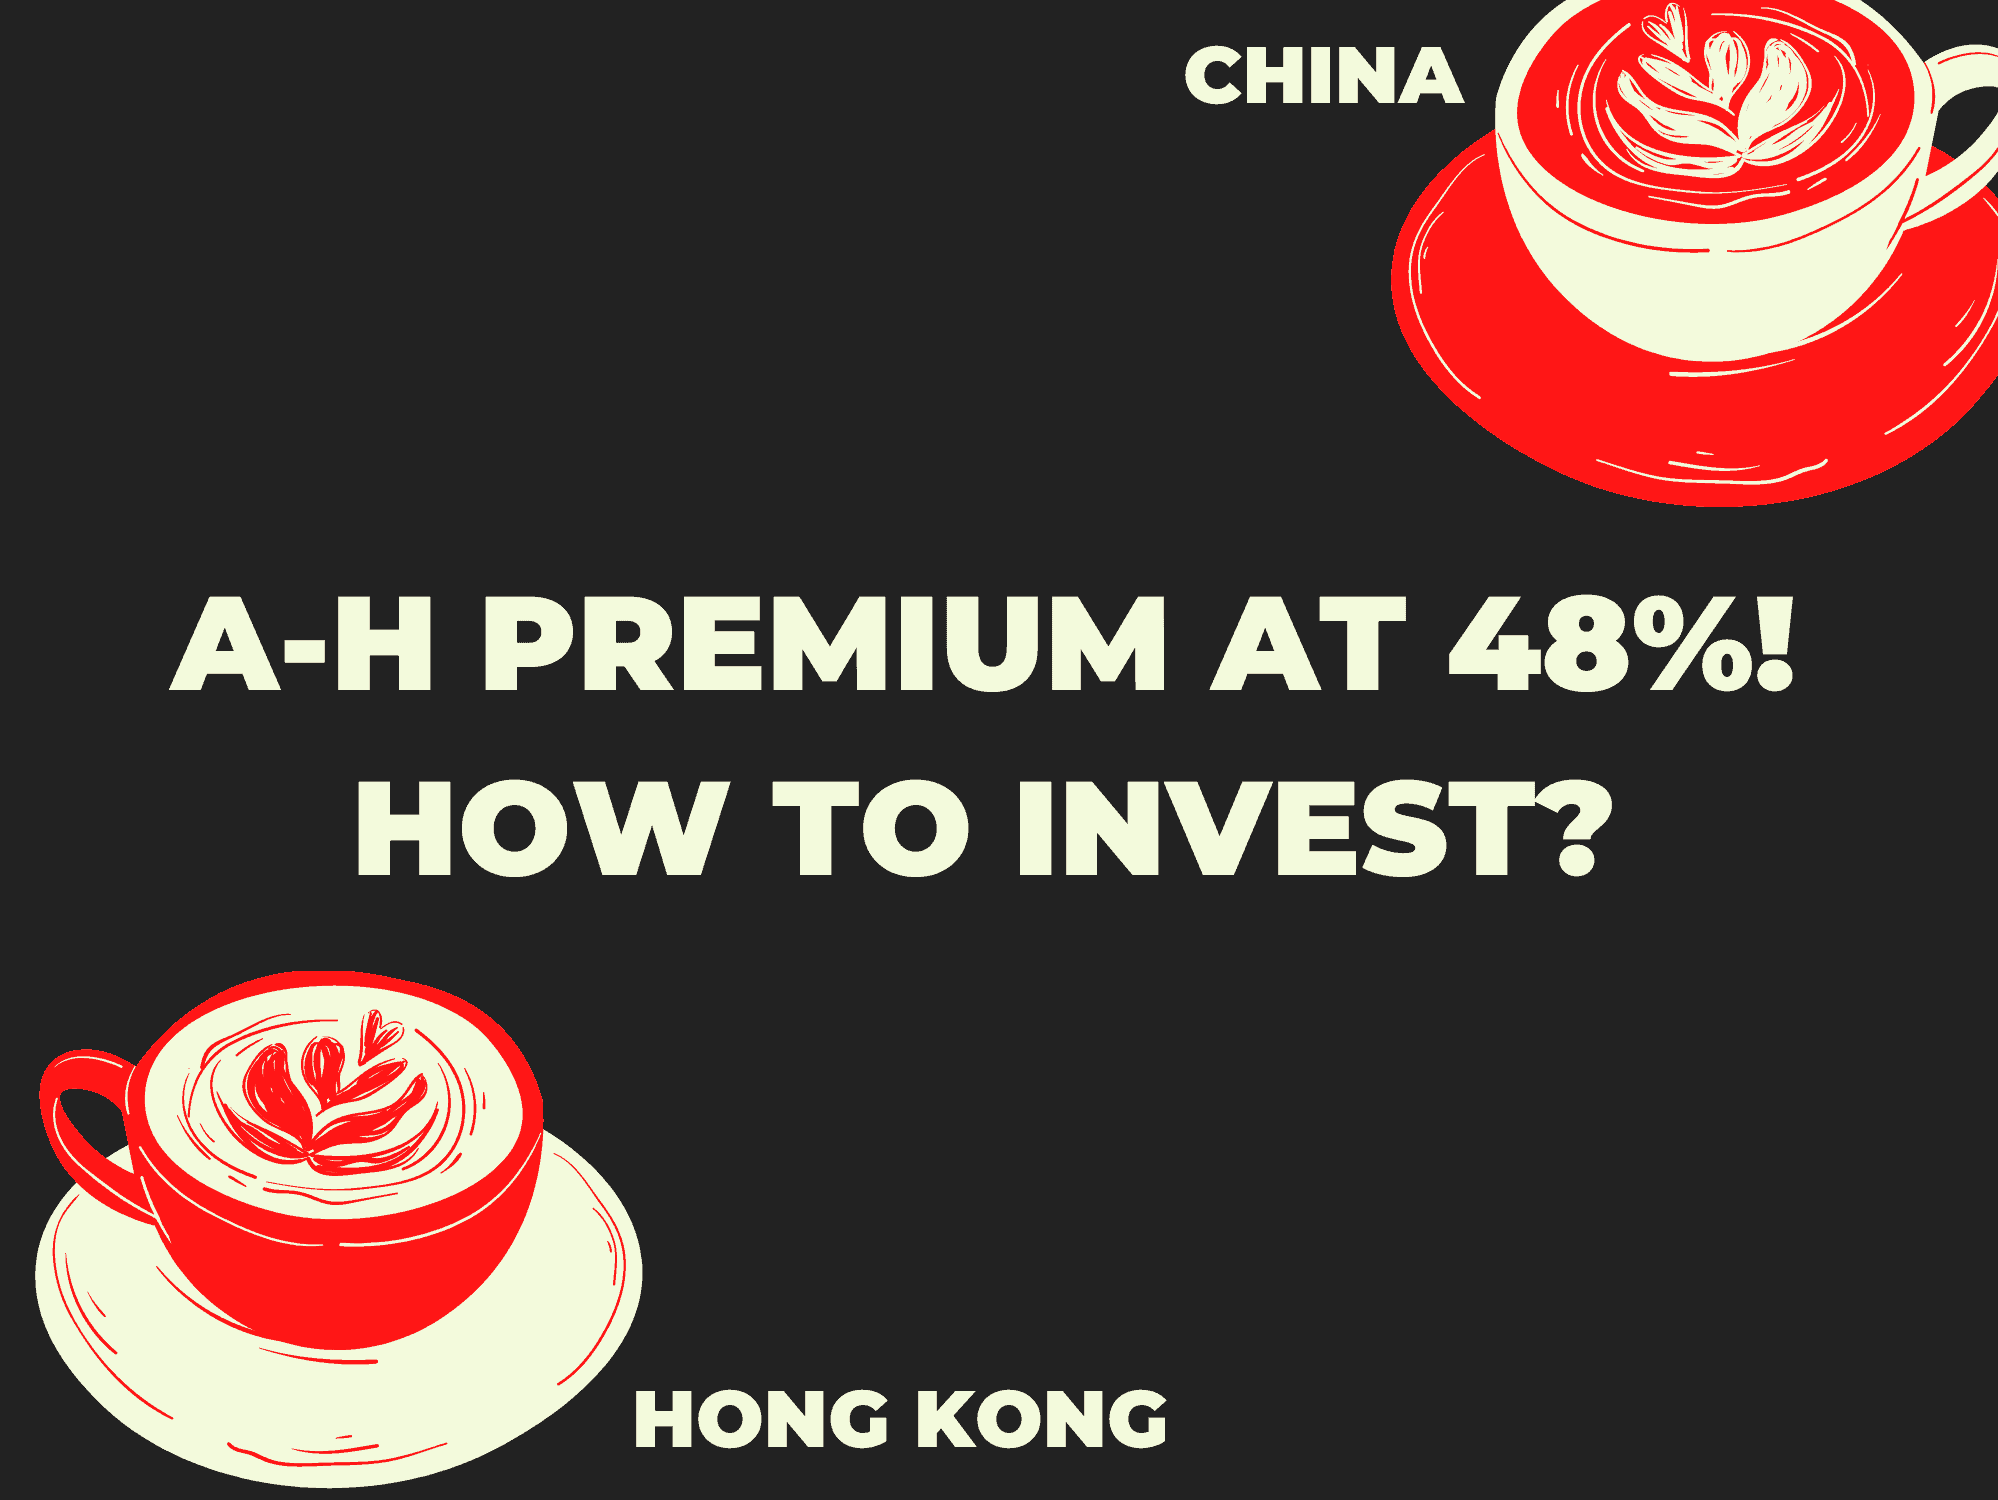 For the SAME COMPANY, China A-shares currently trade at a 48% premium to H-shares. How to Invest?